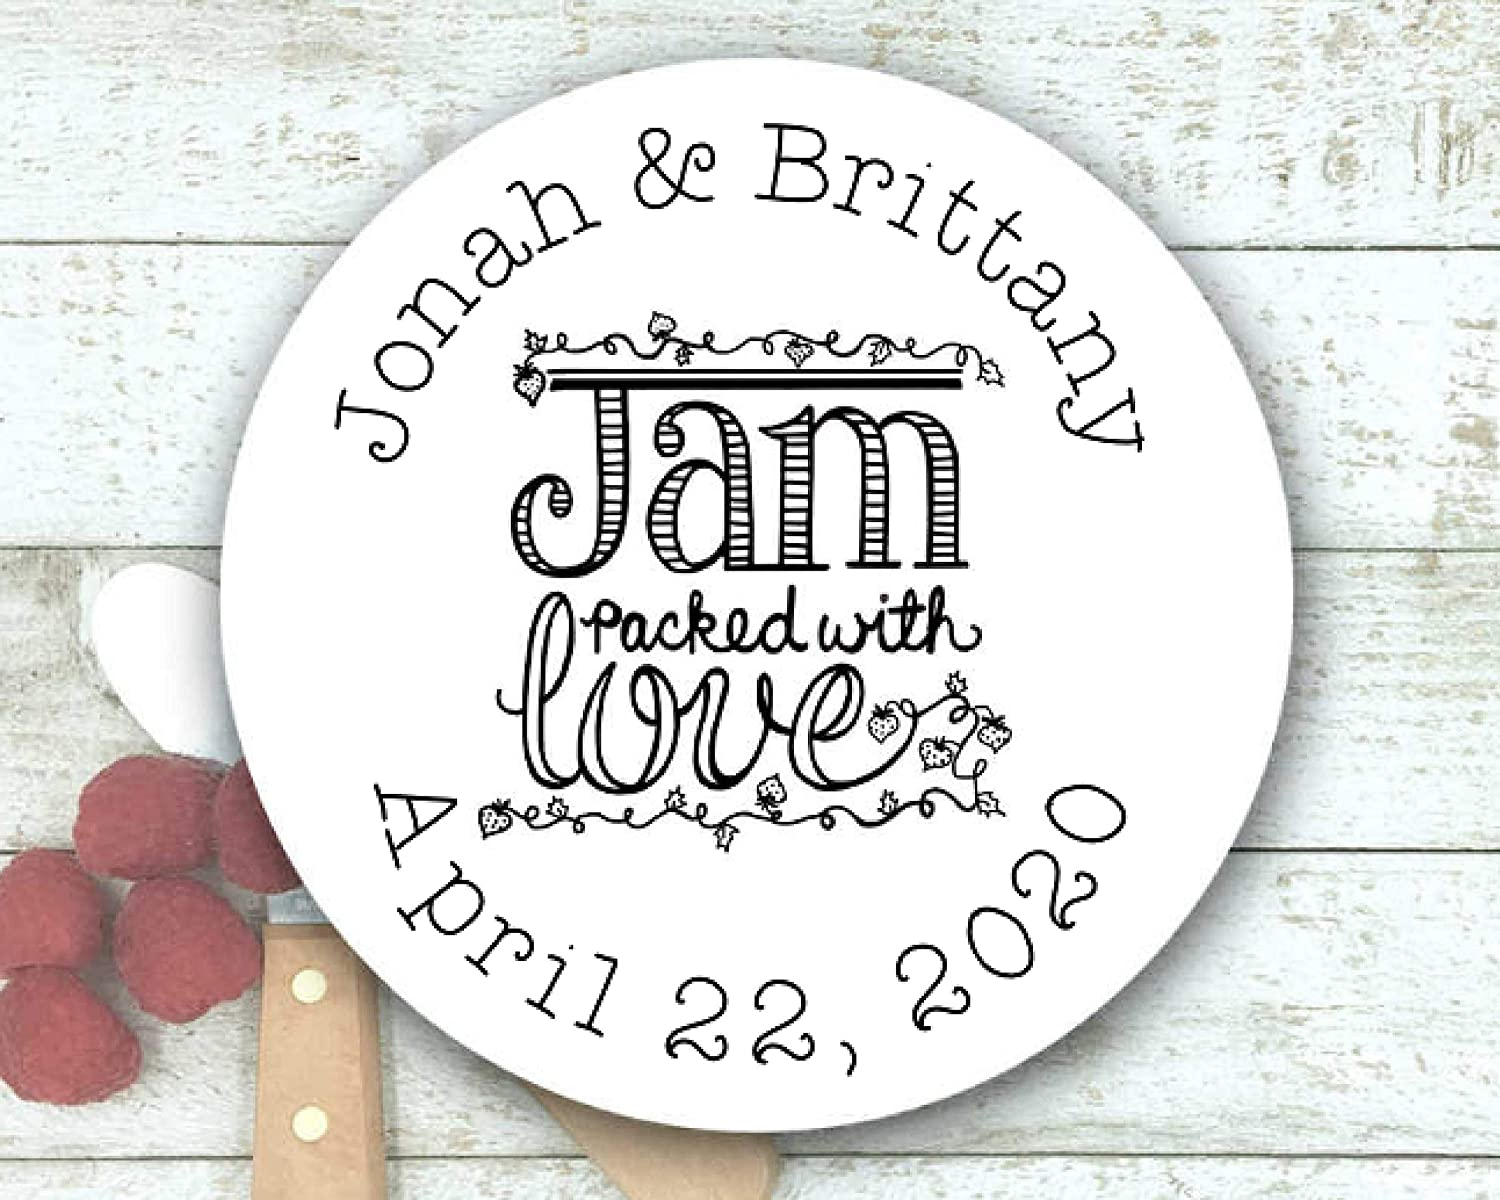 Luxury Jam Labels for Wedding Shower or Favors - Manufacturer regenerated product Personalize Party 20